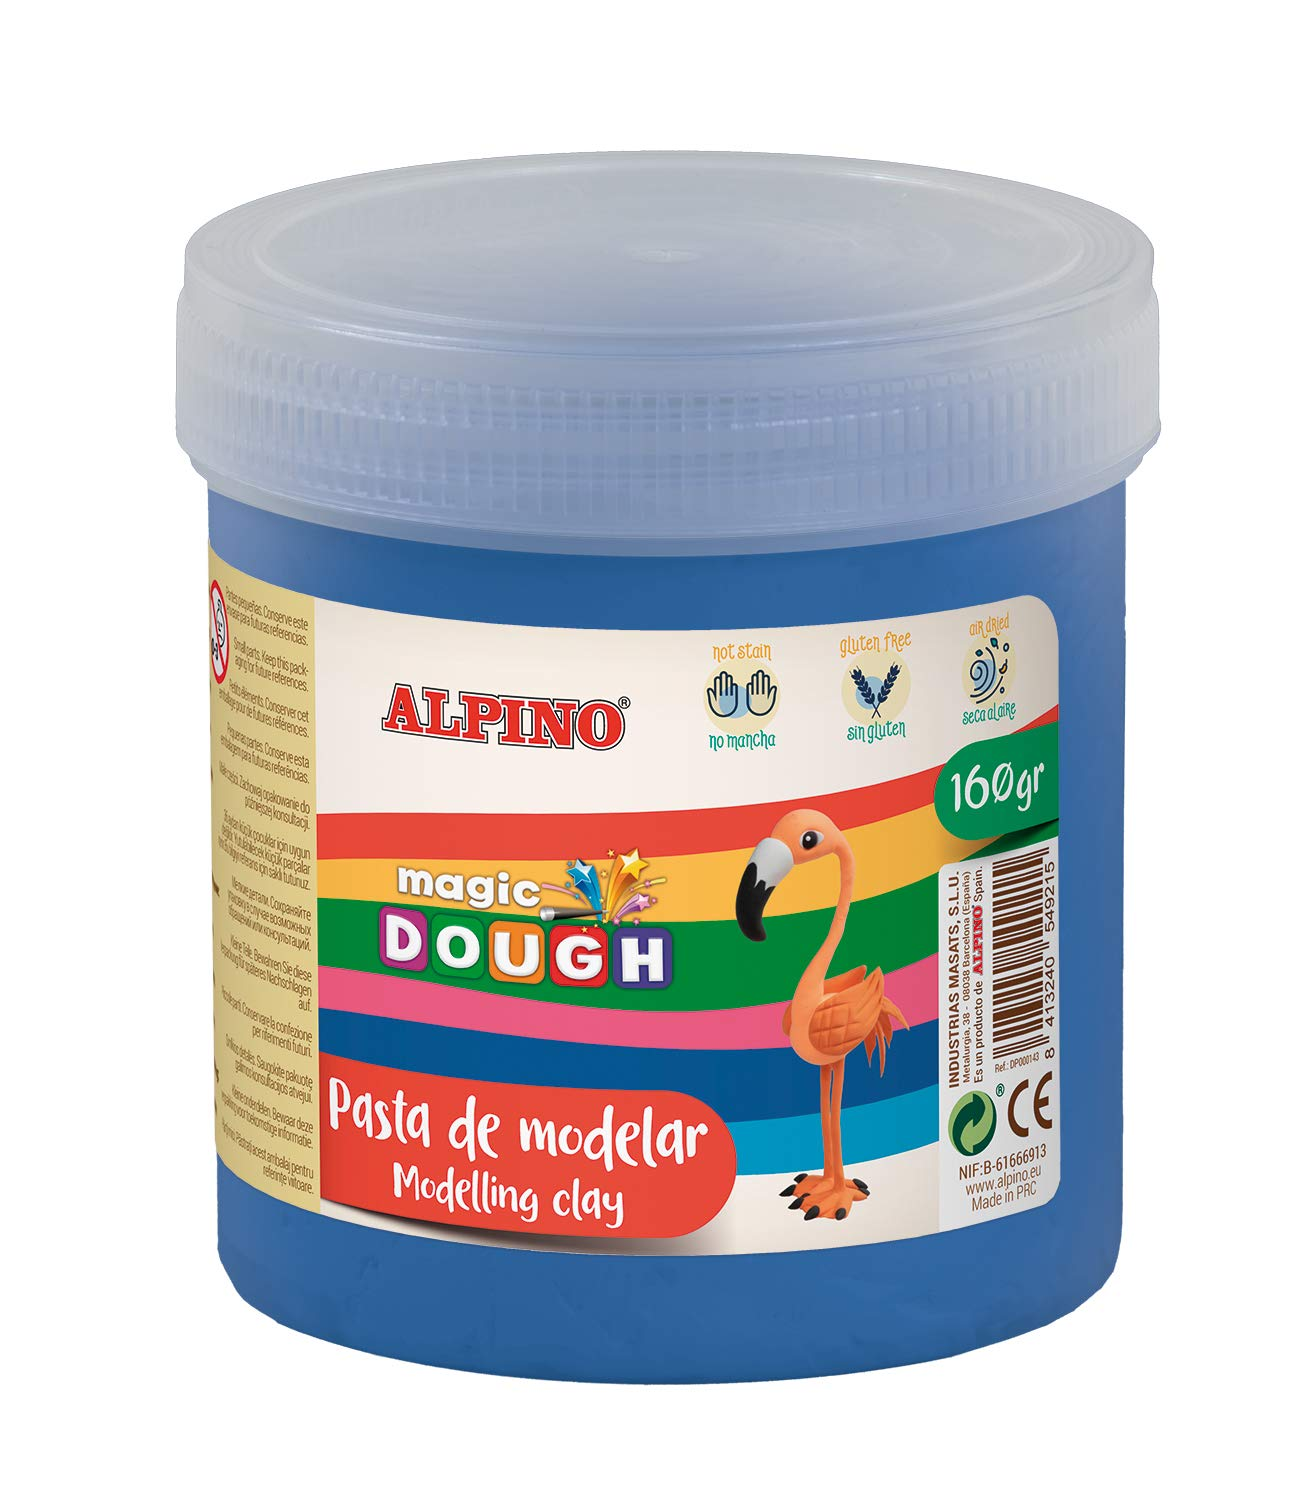 Pasta modelar ALPINO Magic Dough 160g azul DP000148